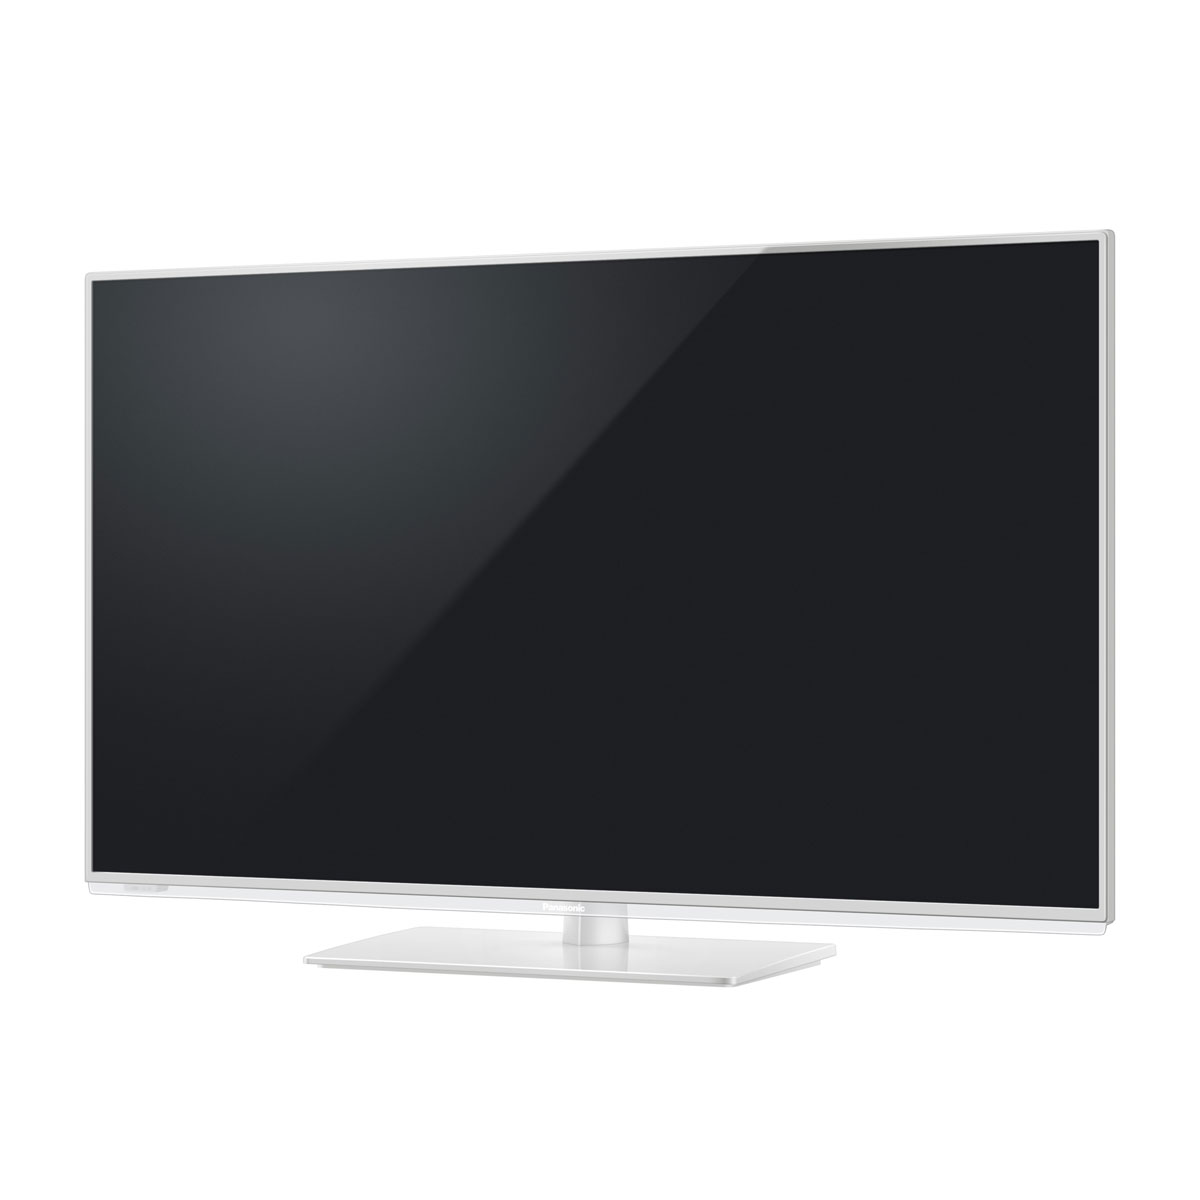 panasonic tx l42e6ew tv panasonic sur ldlc. Black Bedroom Furniture Sets. Home Design Ideas